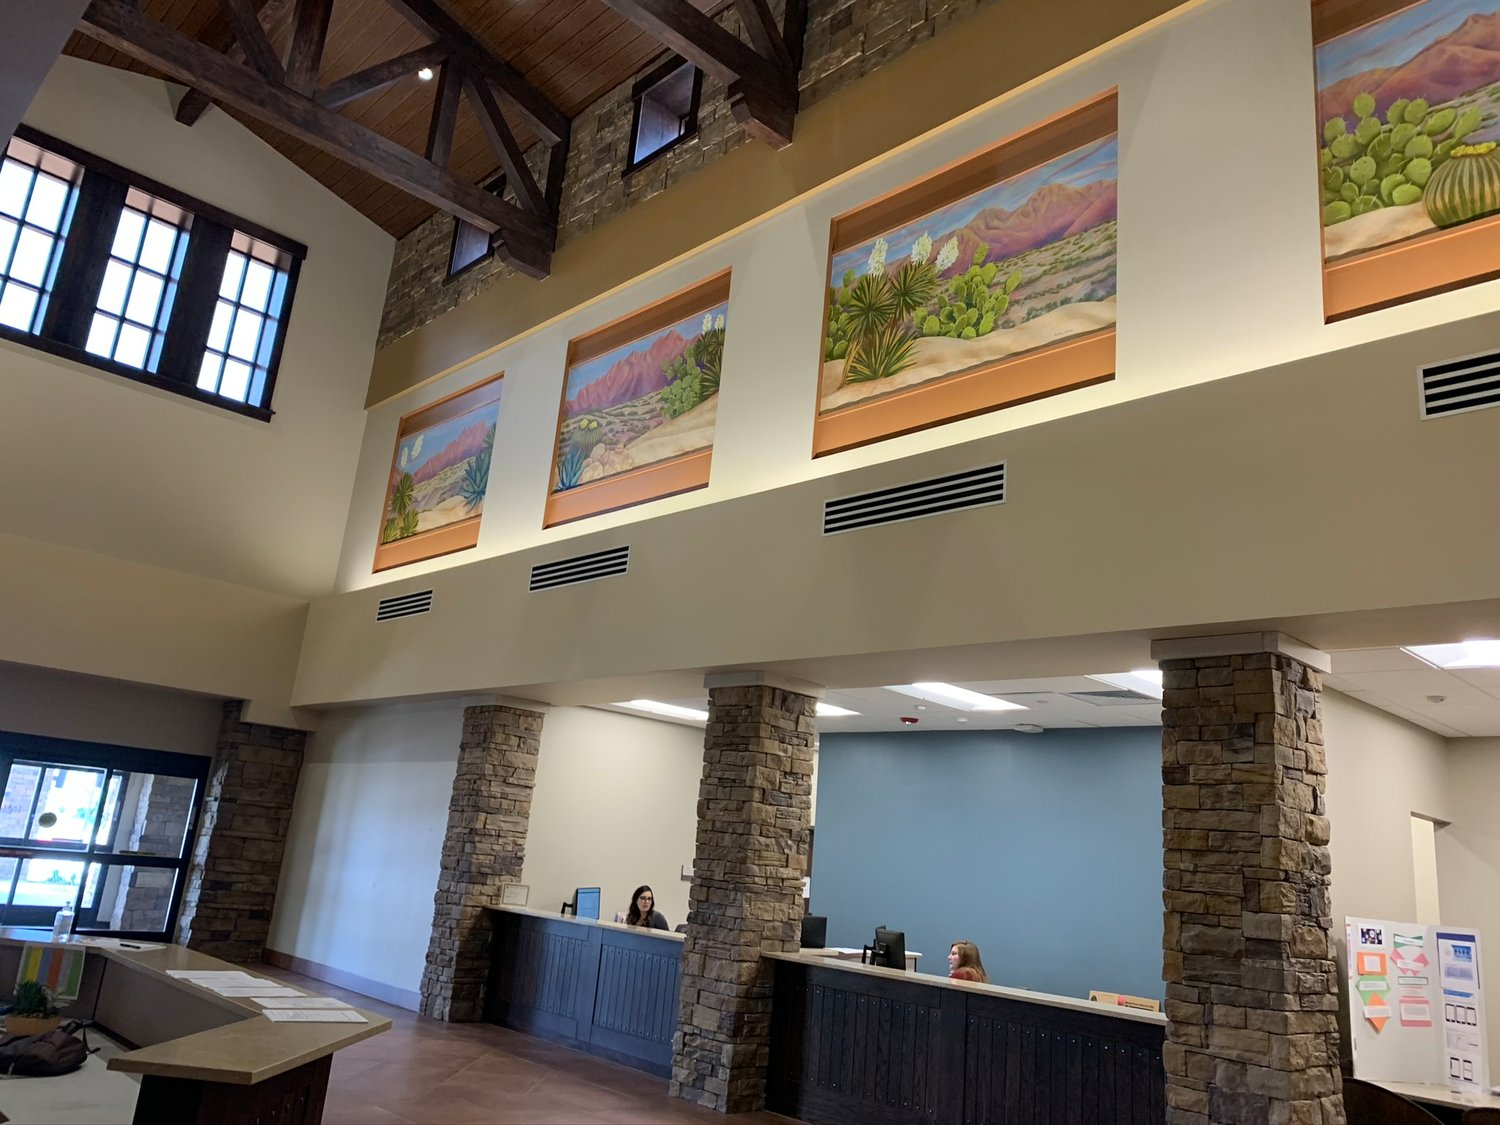 The entryway at Three Crosses Regional Hospital welcomes patients in a quiet stately way.